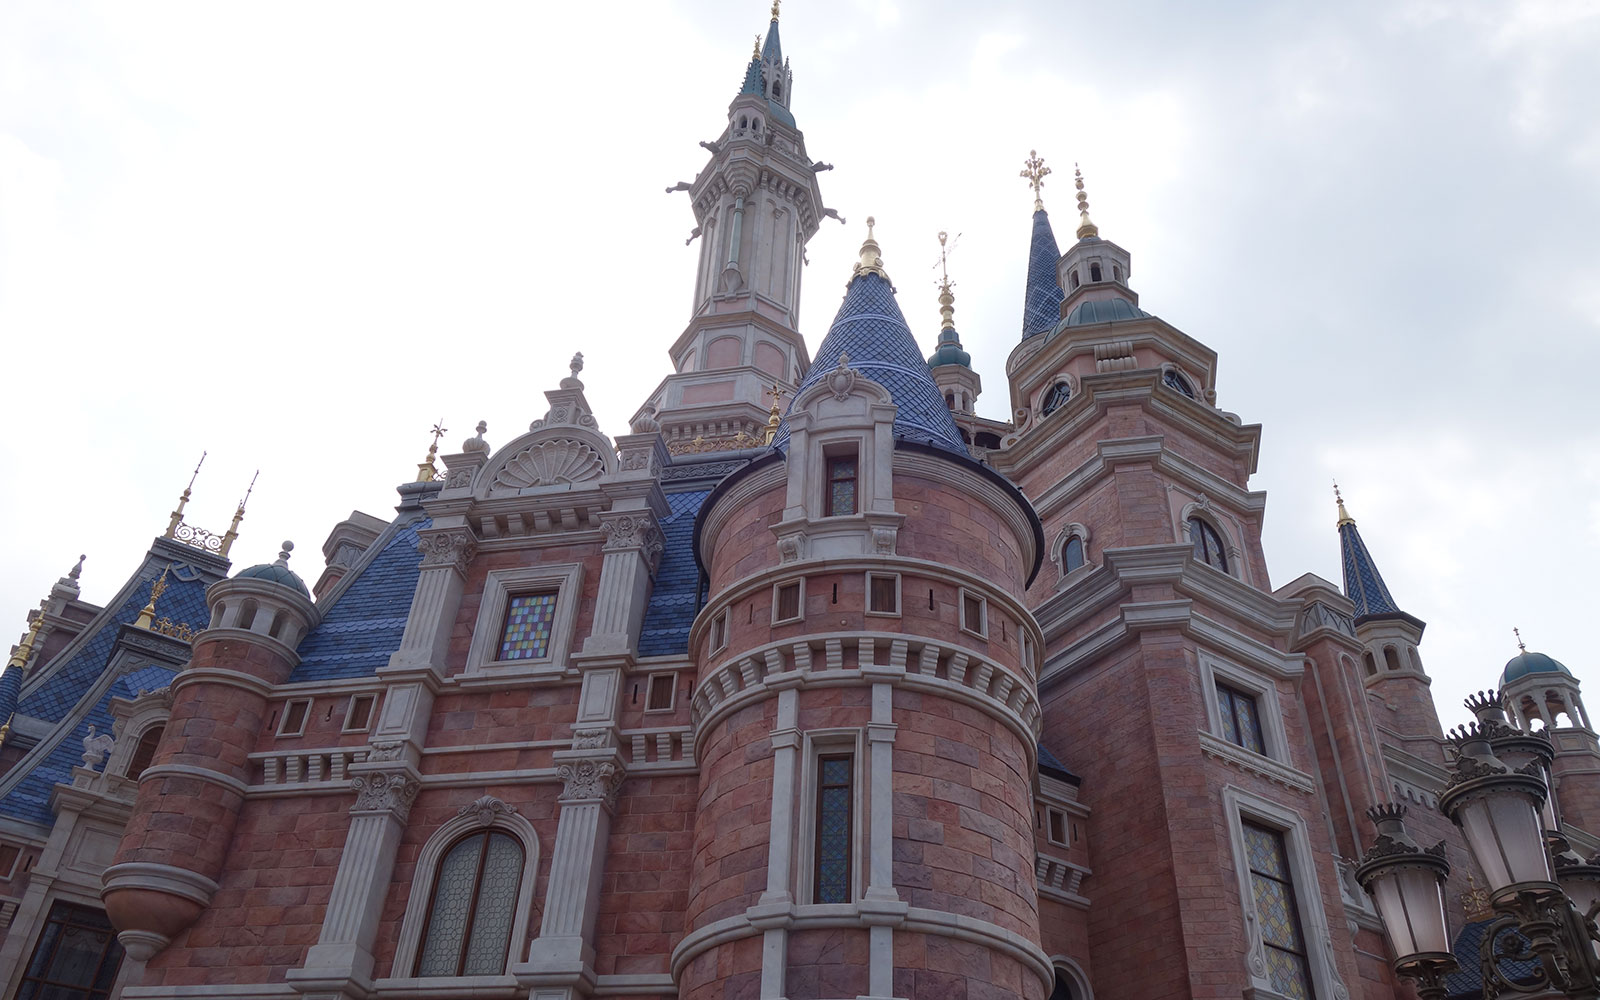 Shanghai Disney inside